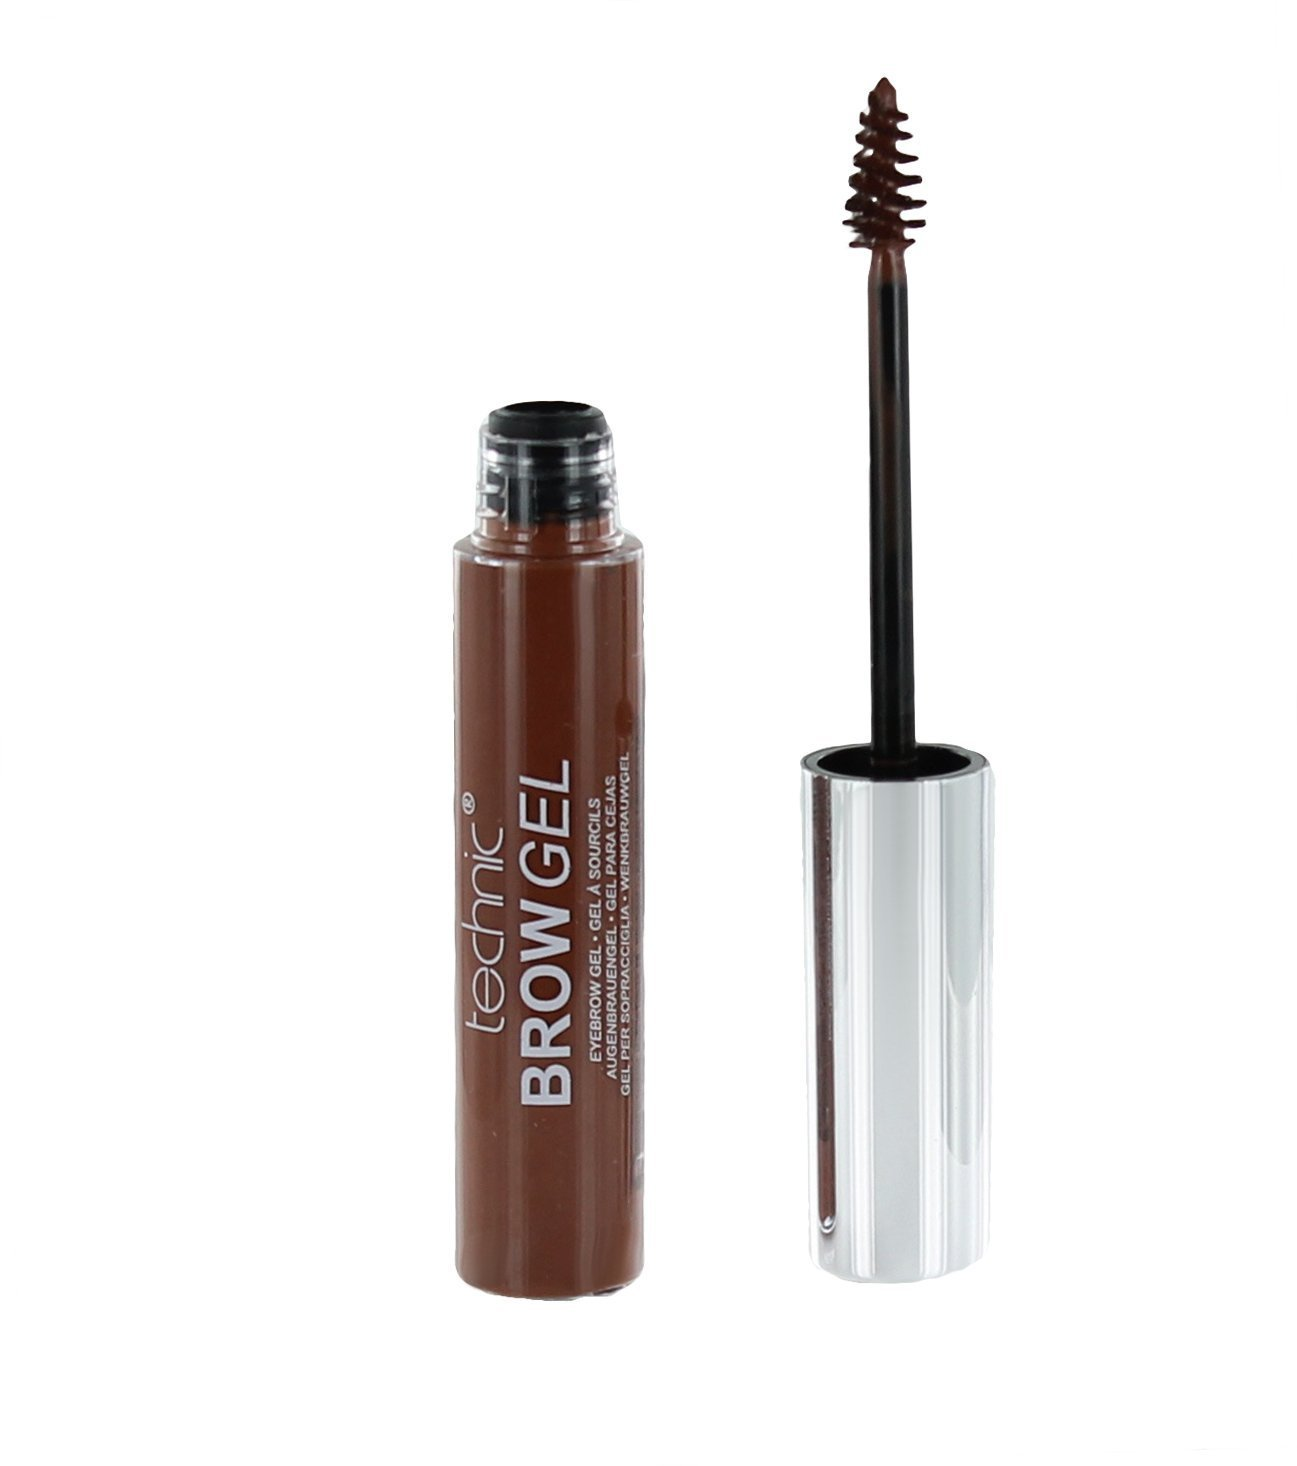 Amazon.com : Technic Brow Gel Eyebrow Shaping Gel for Bold & Defined - 10 ml - Medium : Beauty